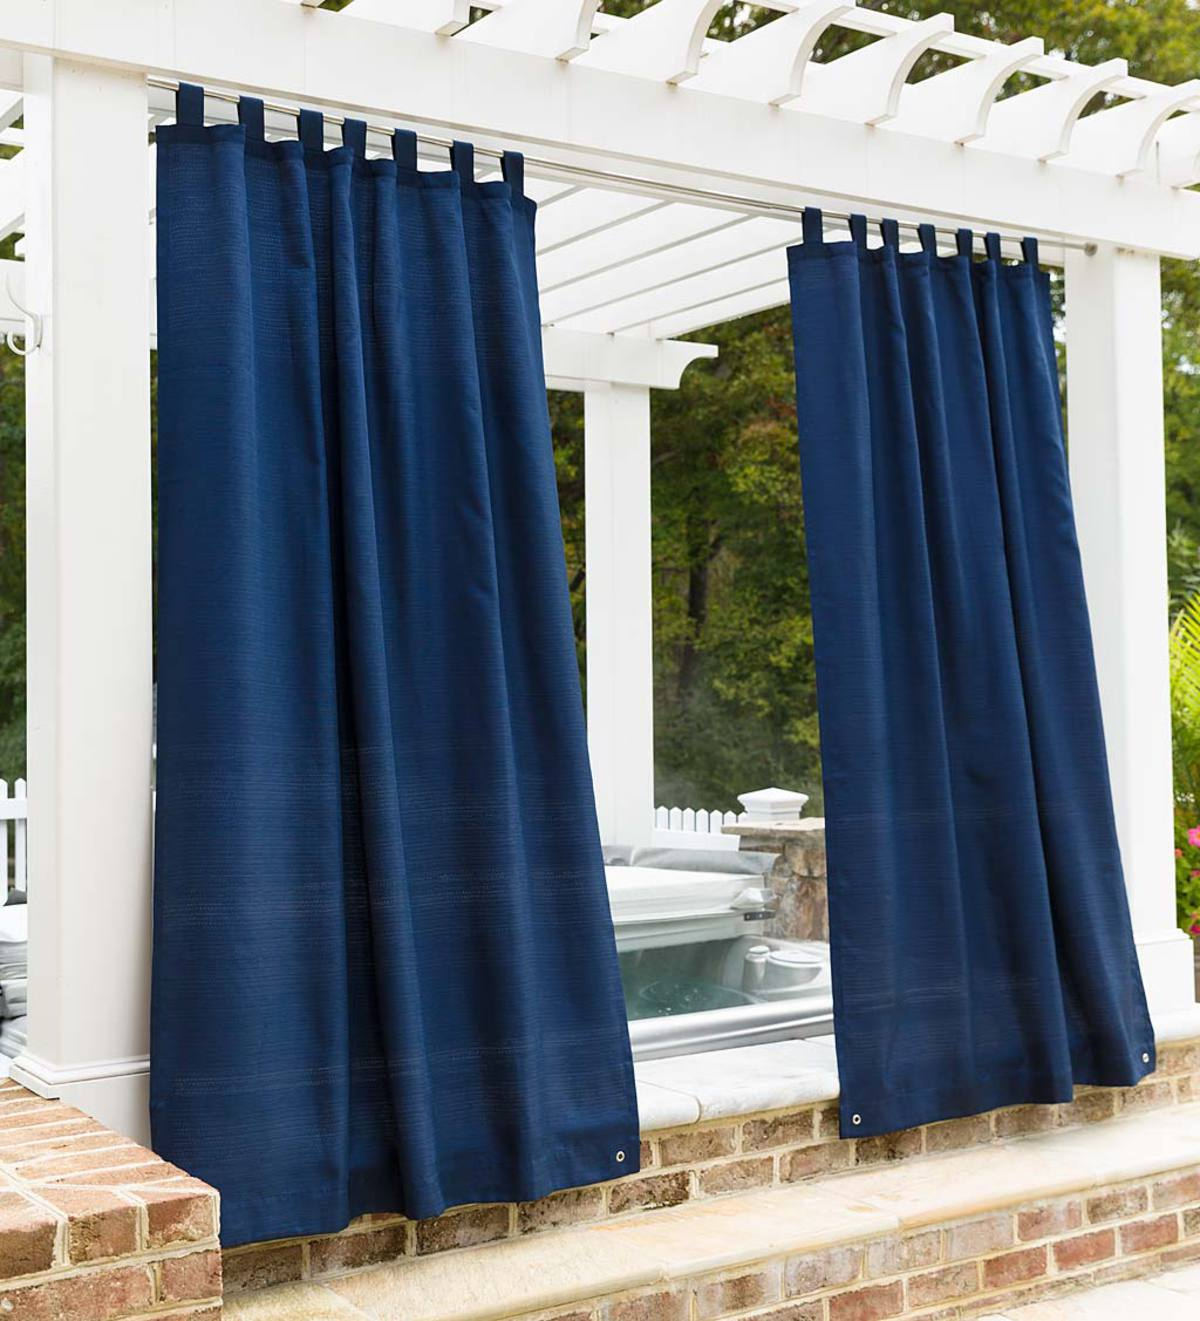 Grasscloth Outdoor Curtain Panel With Grommet Top Throughout Patio Grommet Top Single Curtain Panels (View 15 of 20)